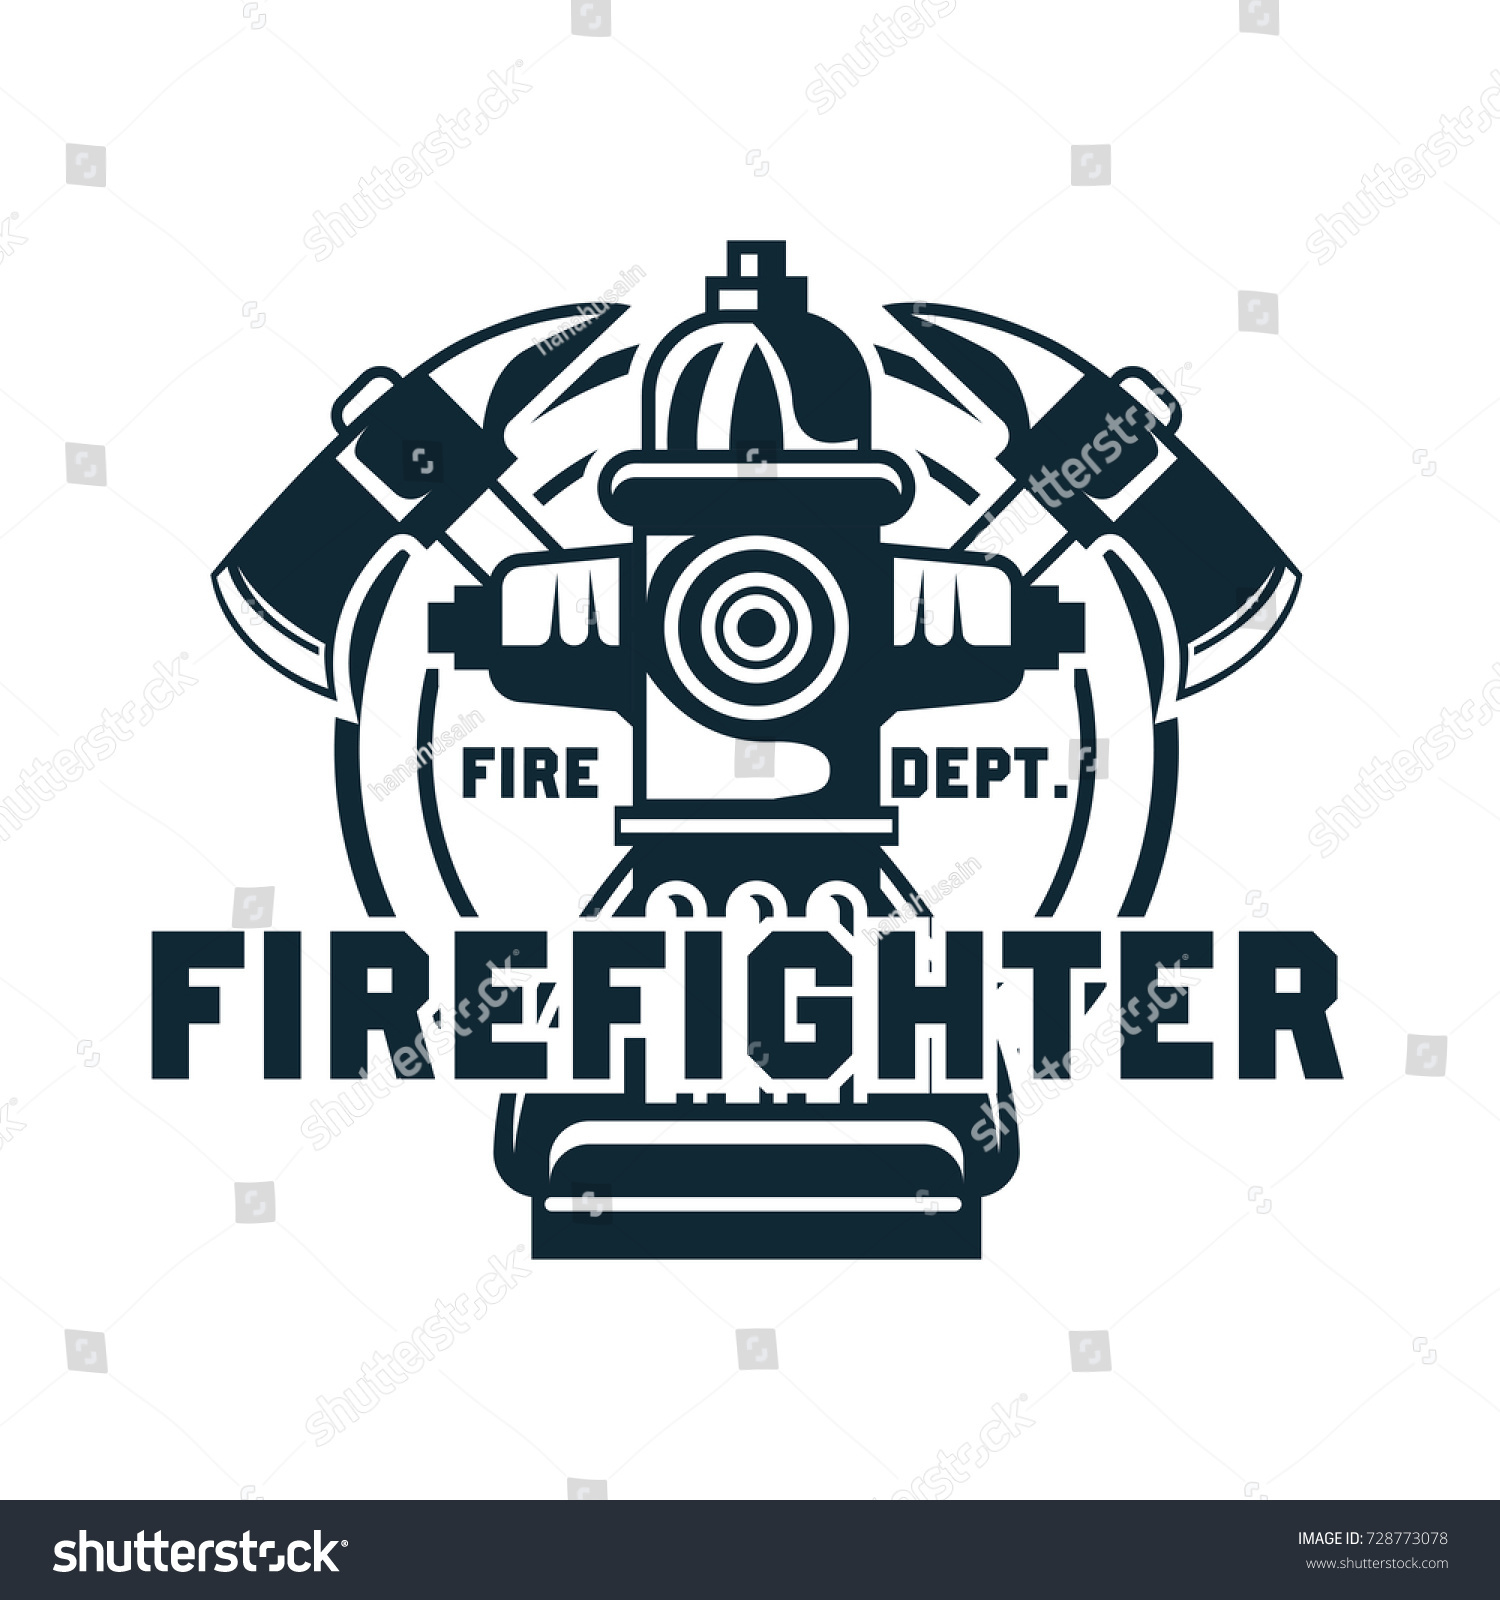 Firefighter logo emblems insignia text space stock vector firefighter logo emblems and insignia with text space for your slogan tagline vector buycottarizona Choice Image